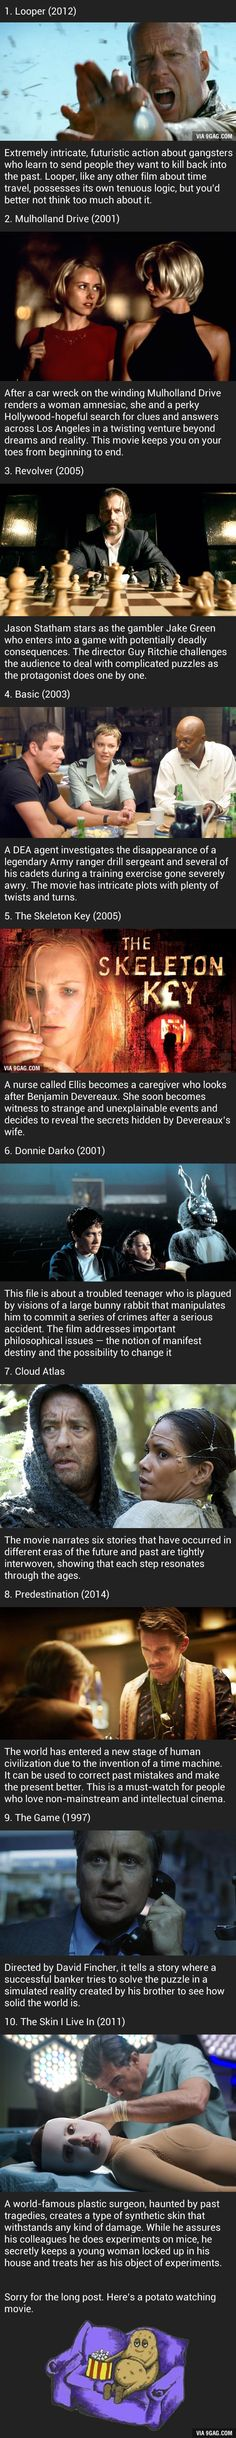 10 Movies That Will Rack Your Brain. Some Are Less Known But Still Awesome